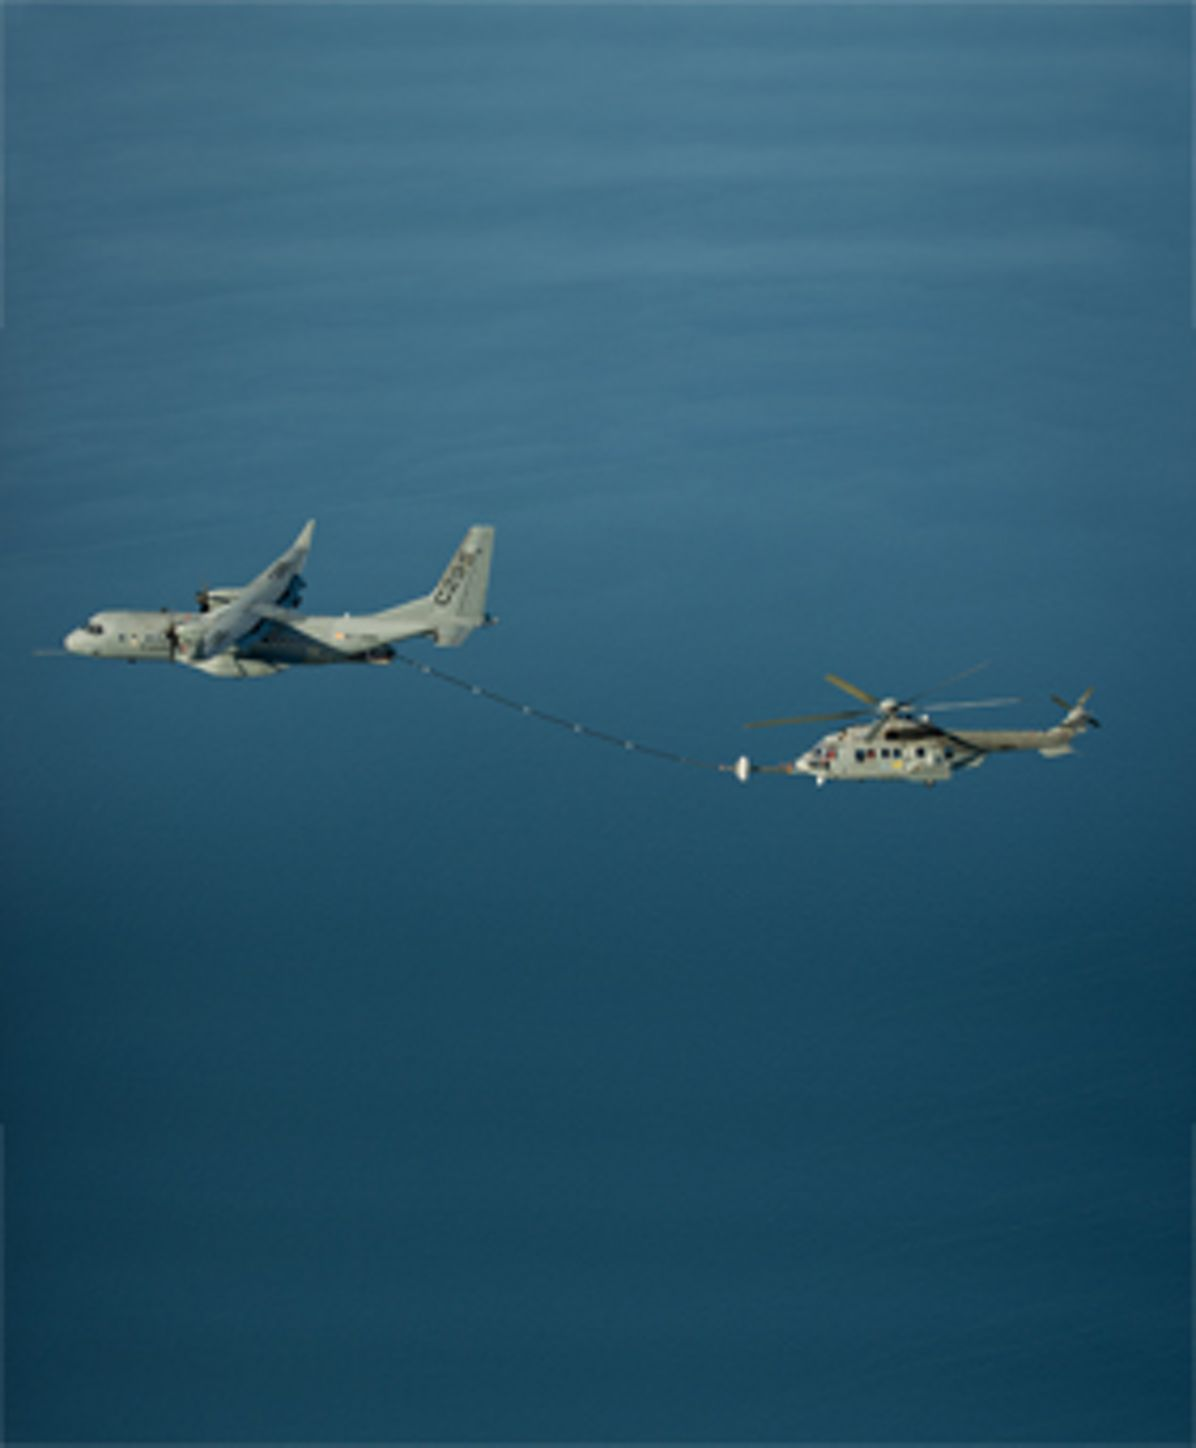 Air-to-air refuelling between  C295W medium transports with a H225M Caracal helicopter